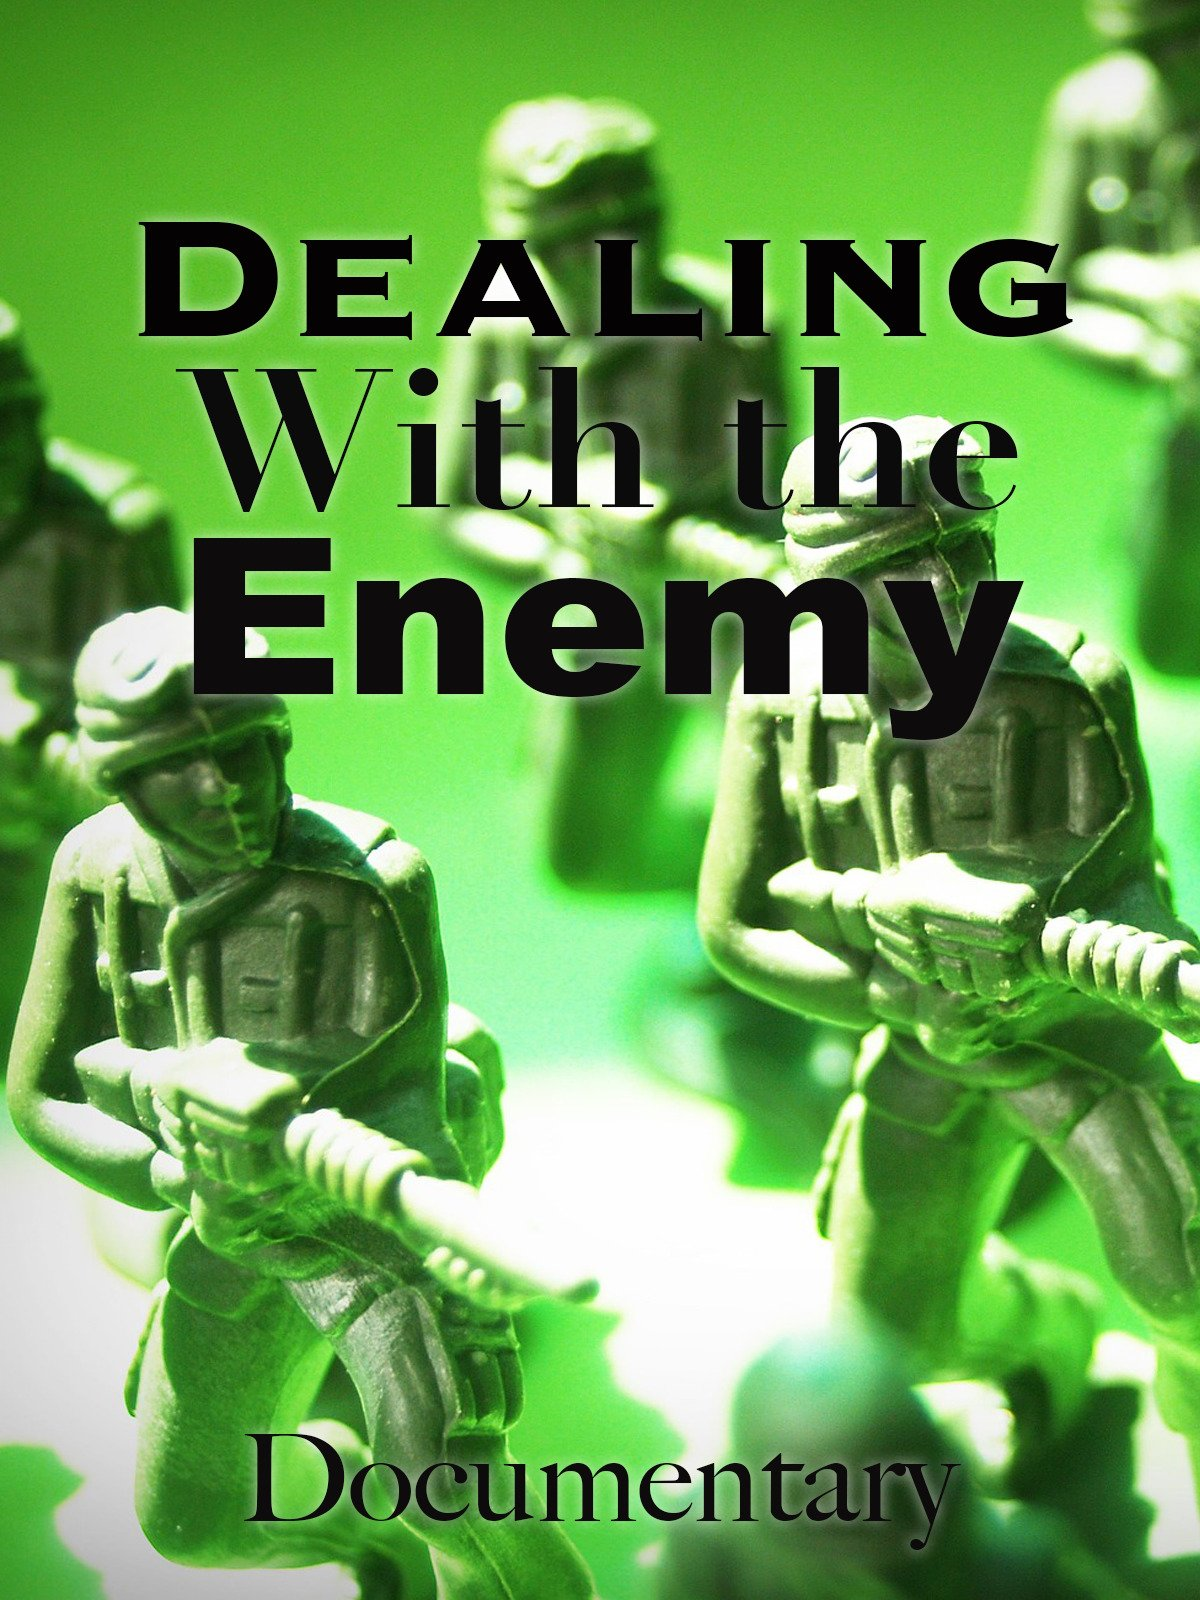 Dealing with the Enemy Documentary